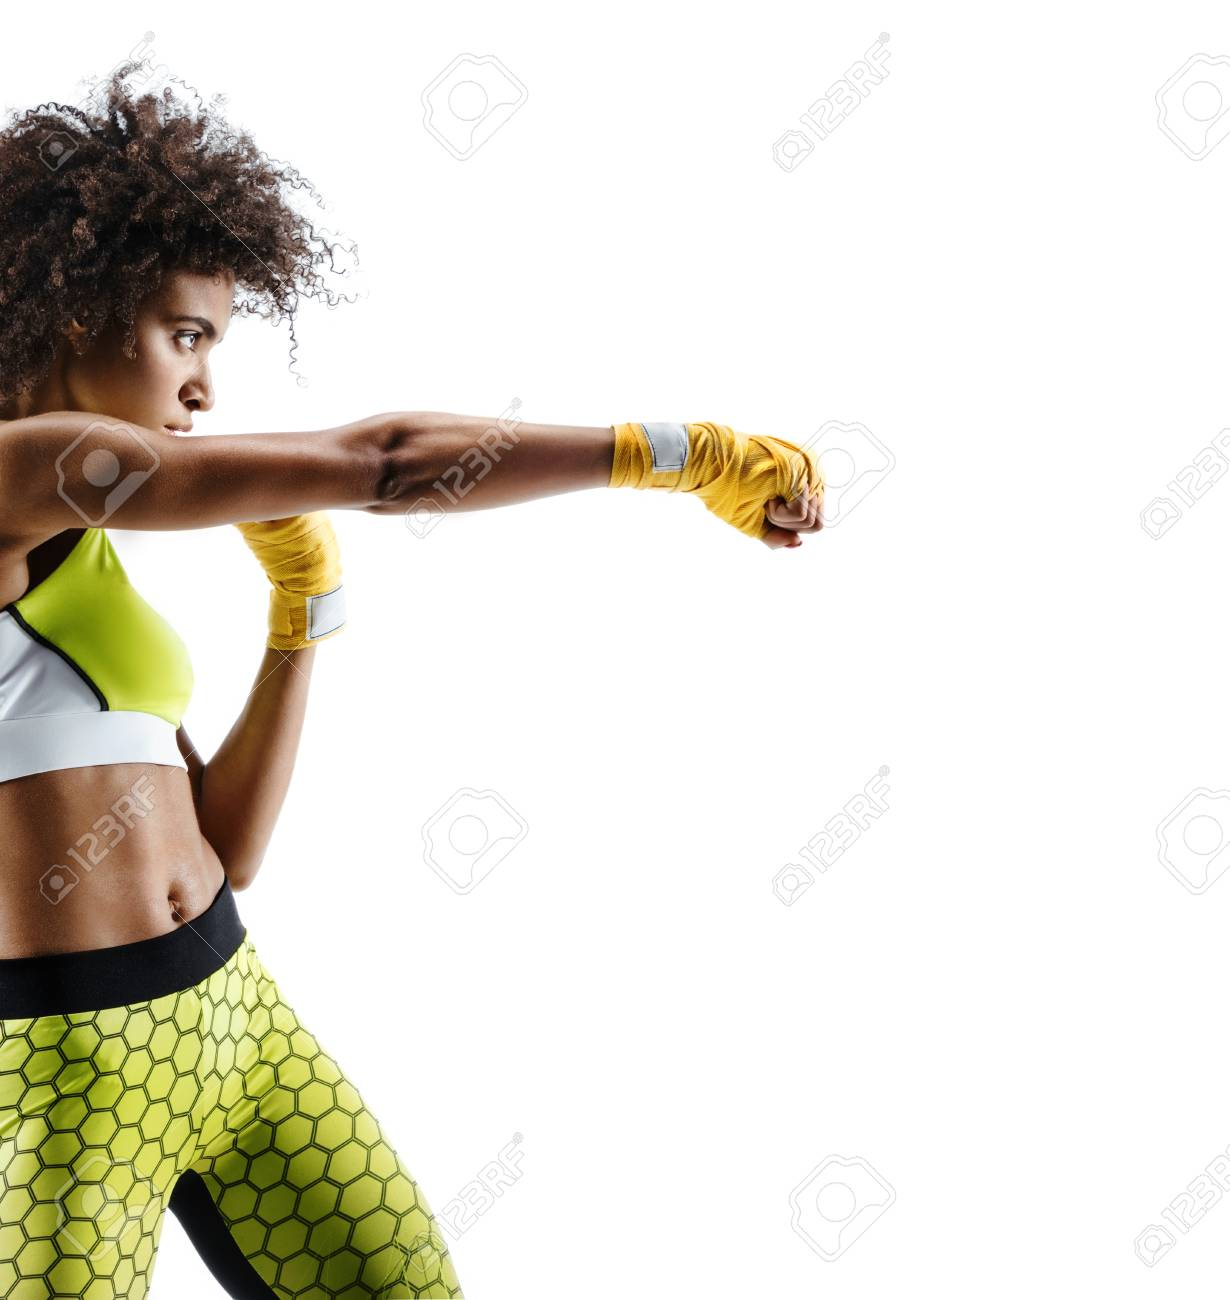 Boxer woman in yellow bandages making direct hit. Photo of sporty african woman during boxing on white background. Dynamic movement. Side view - 91841152